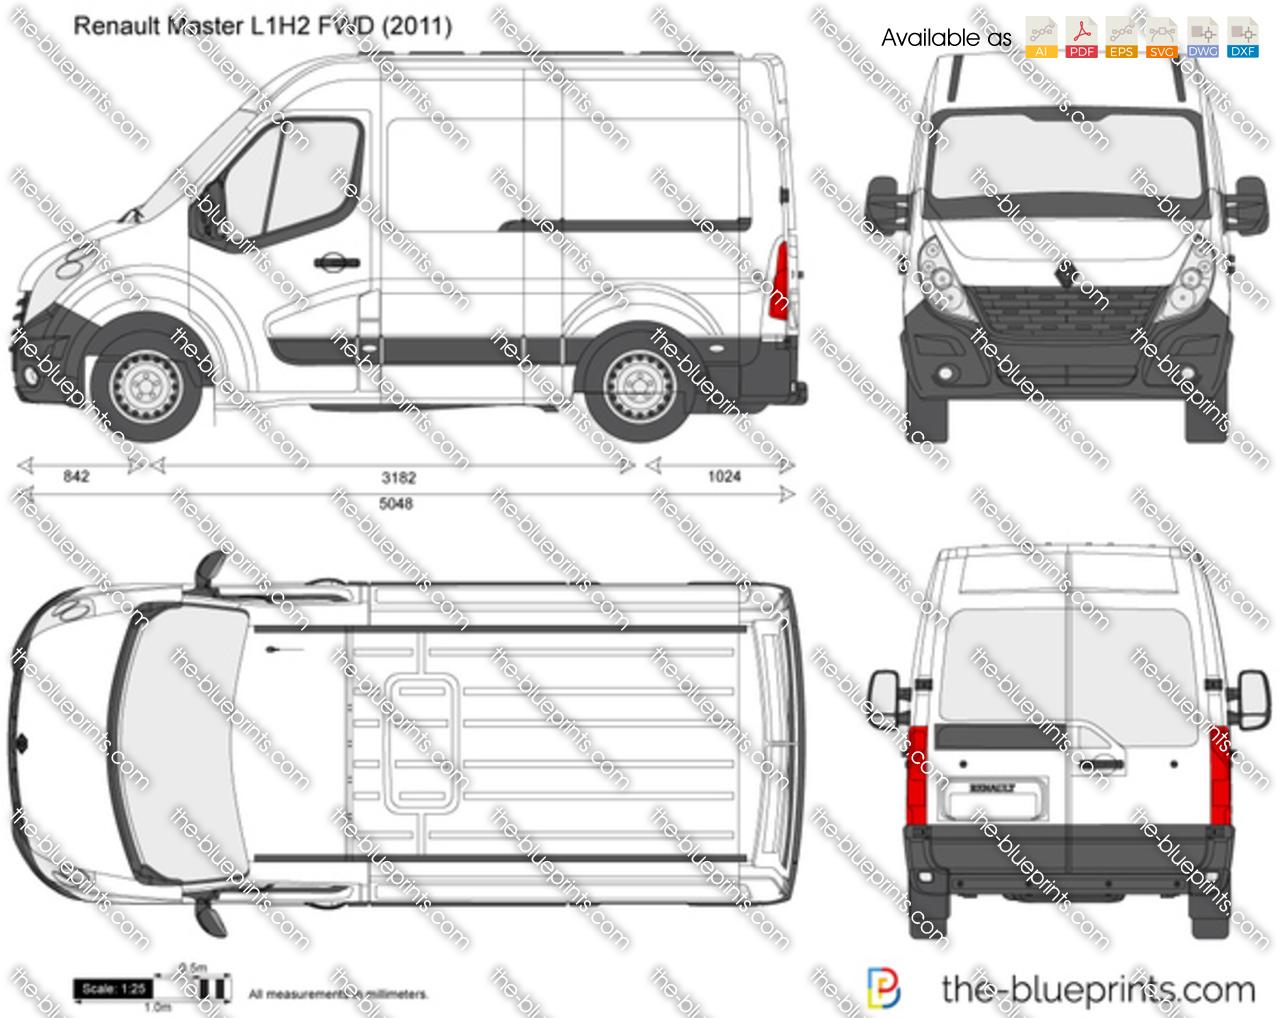 renault master l1h2 fwd vector drawing